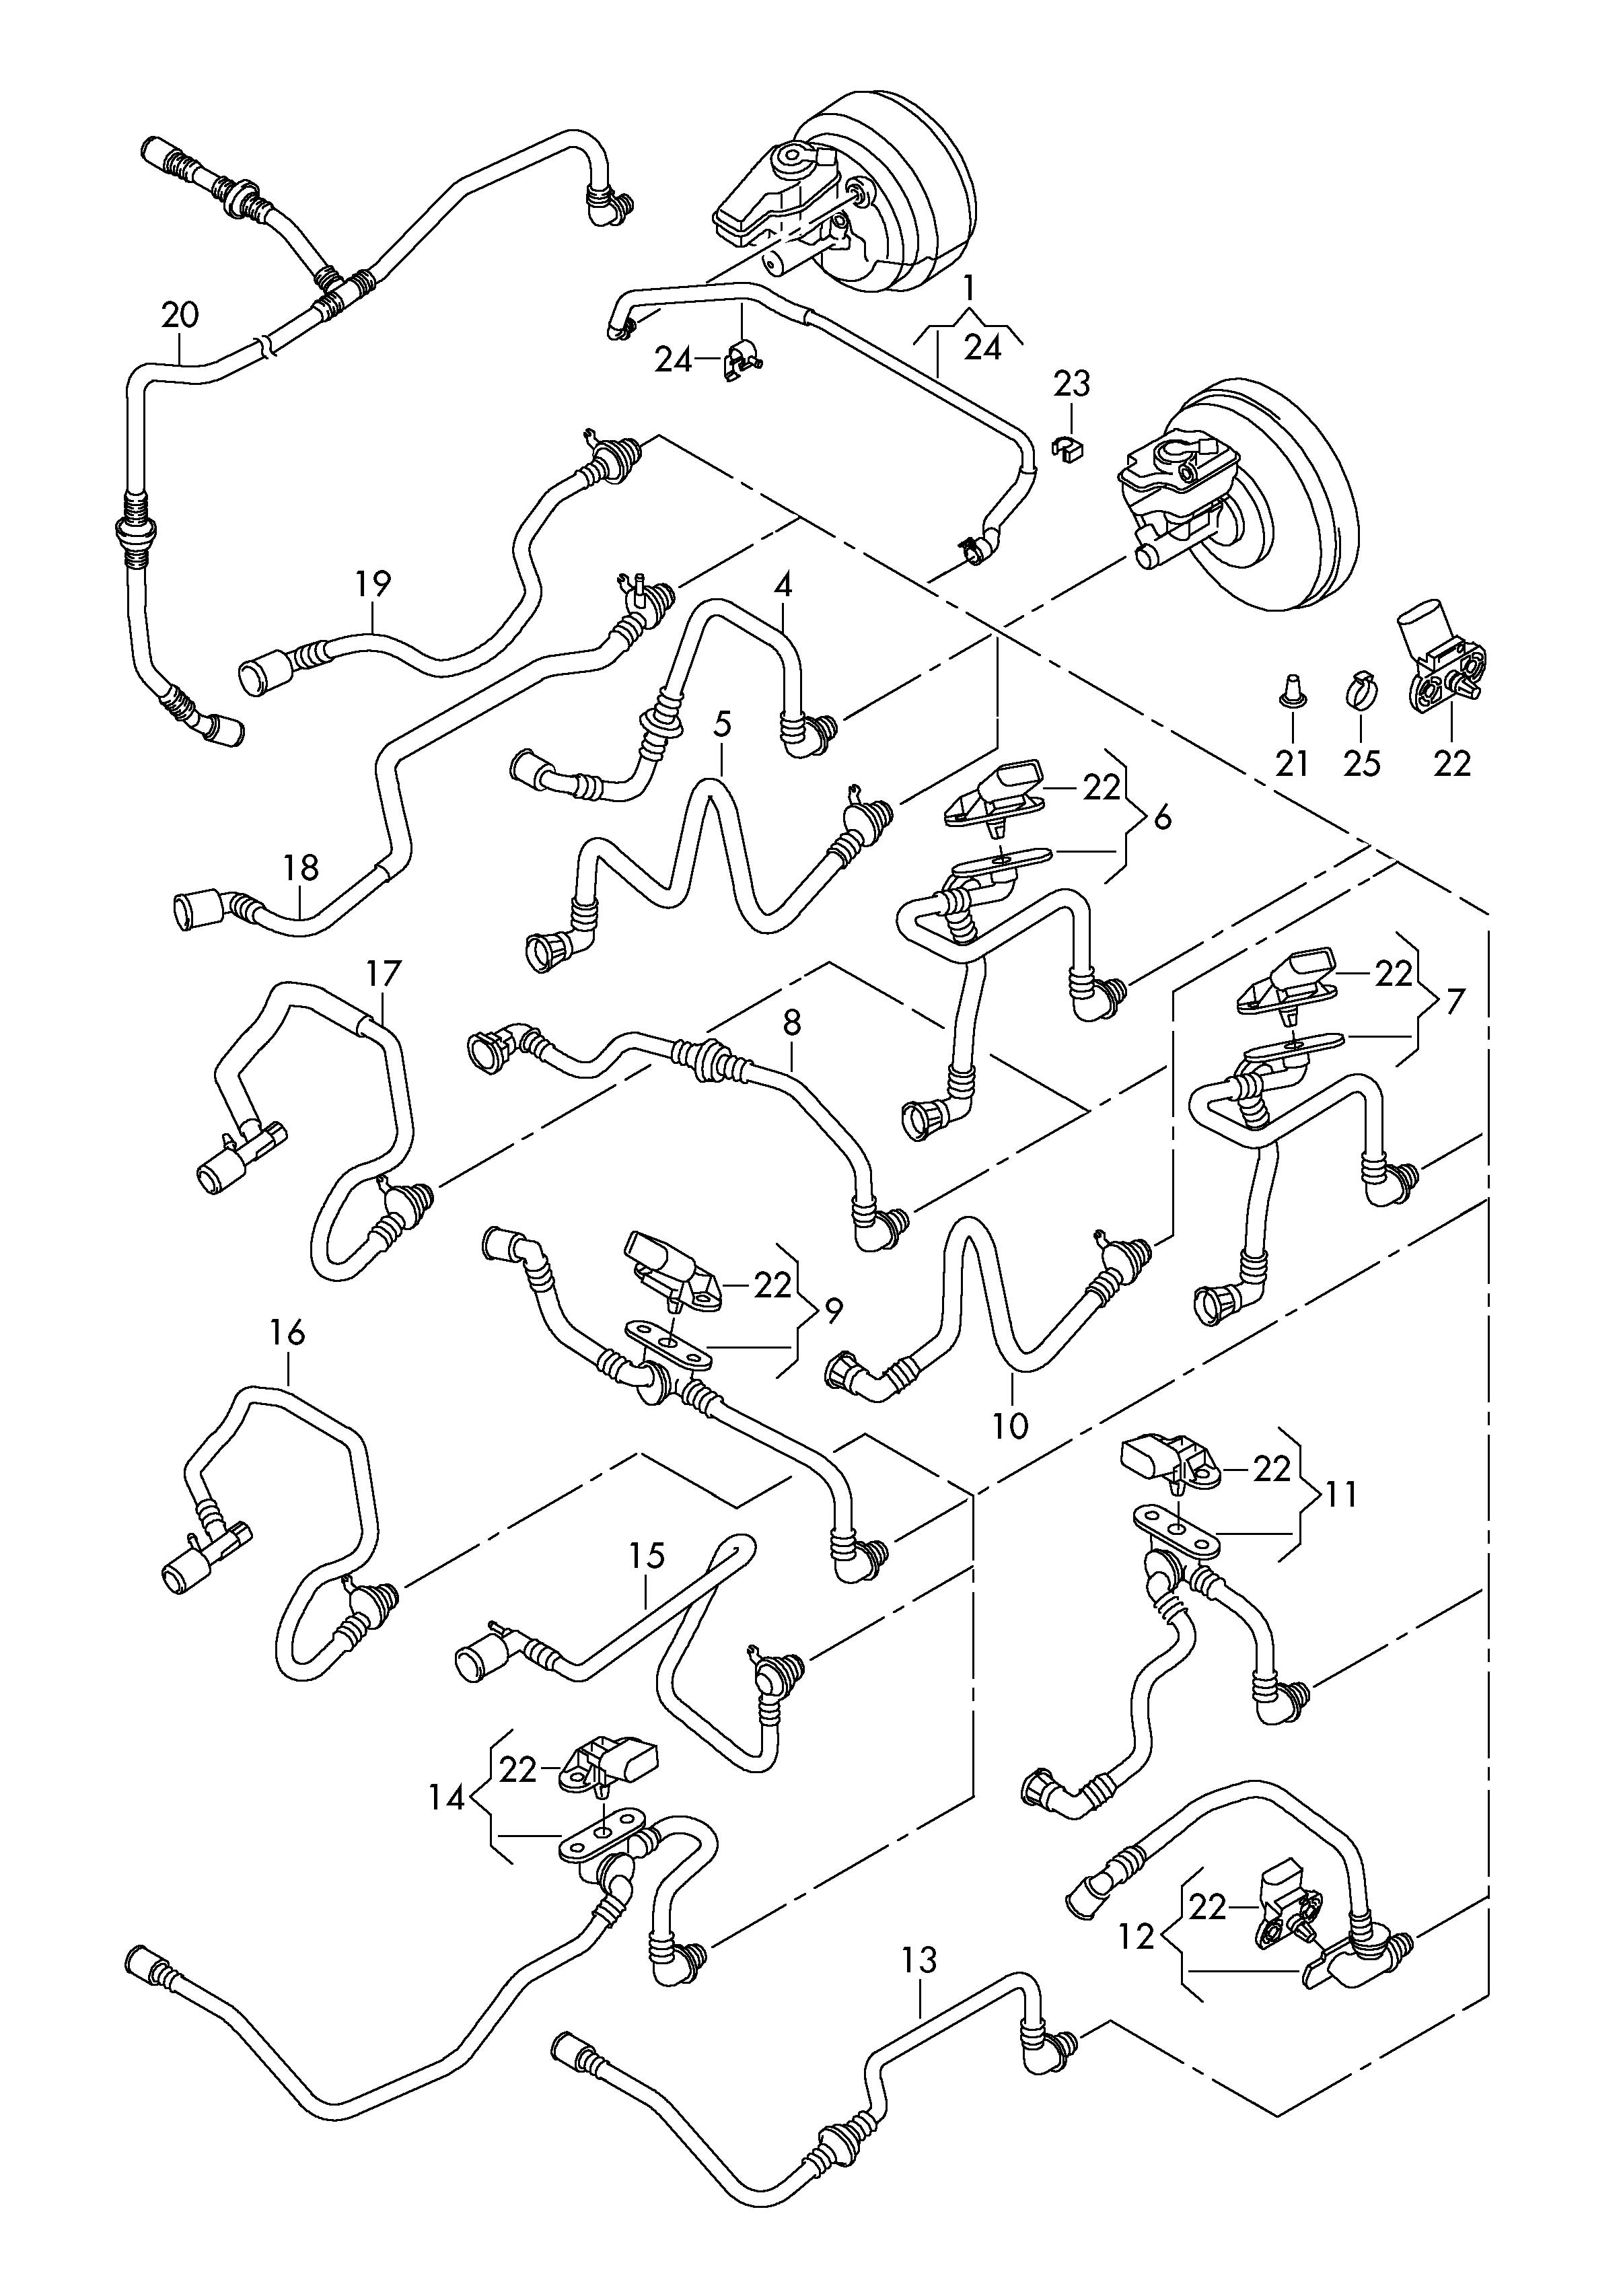 Gmc Yukon Xl Mirror Wiring Diagram. Gmc. Auto Wiring Diagram